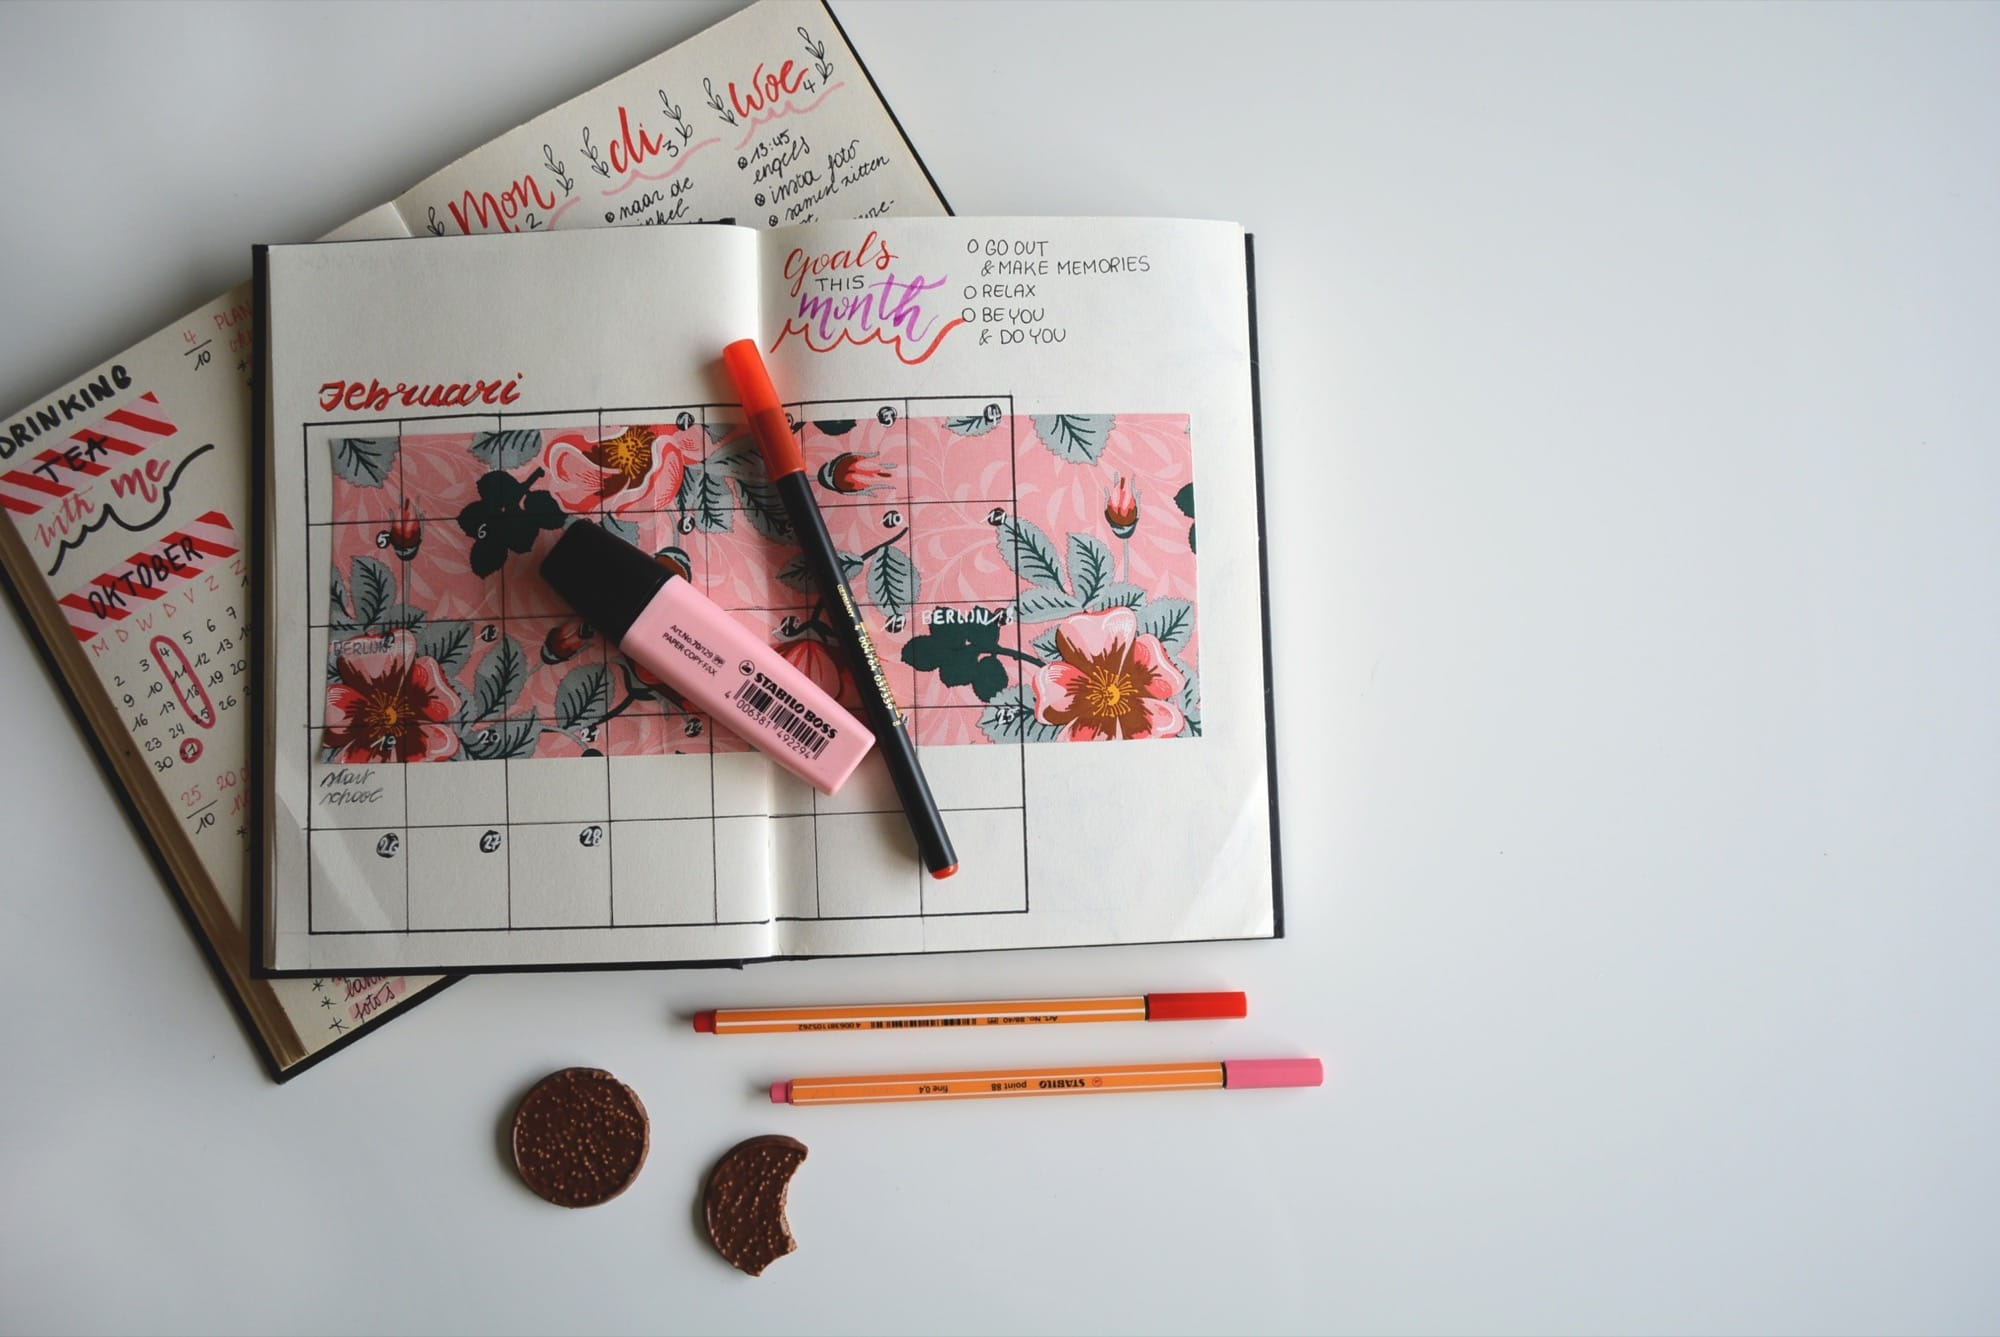 Some adults use the Bullet Journal as an excuse to regress to childhood.